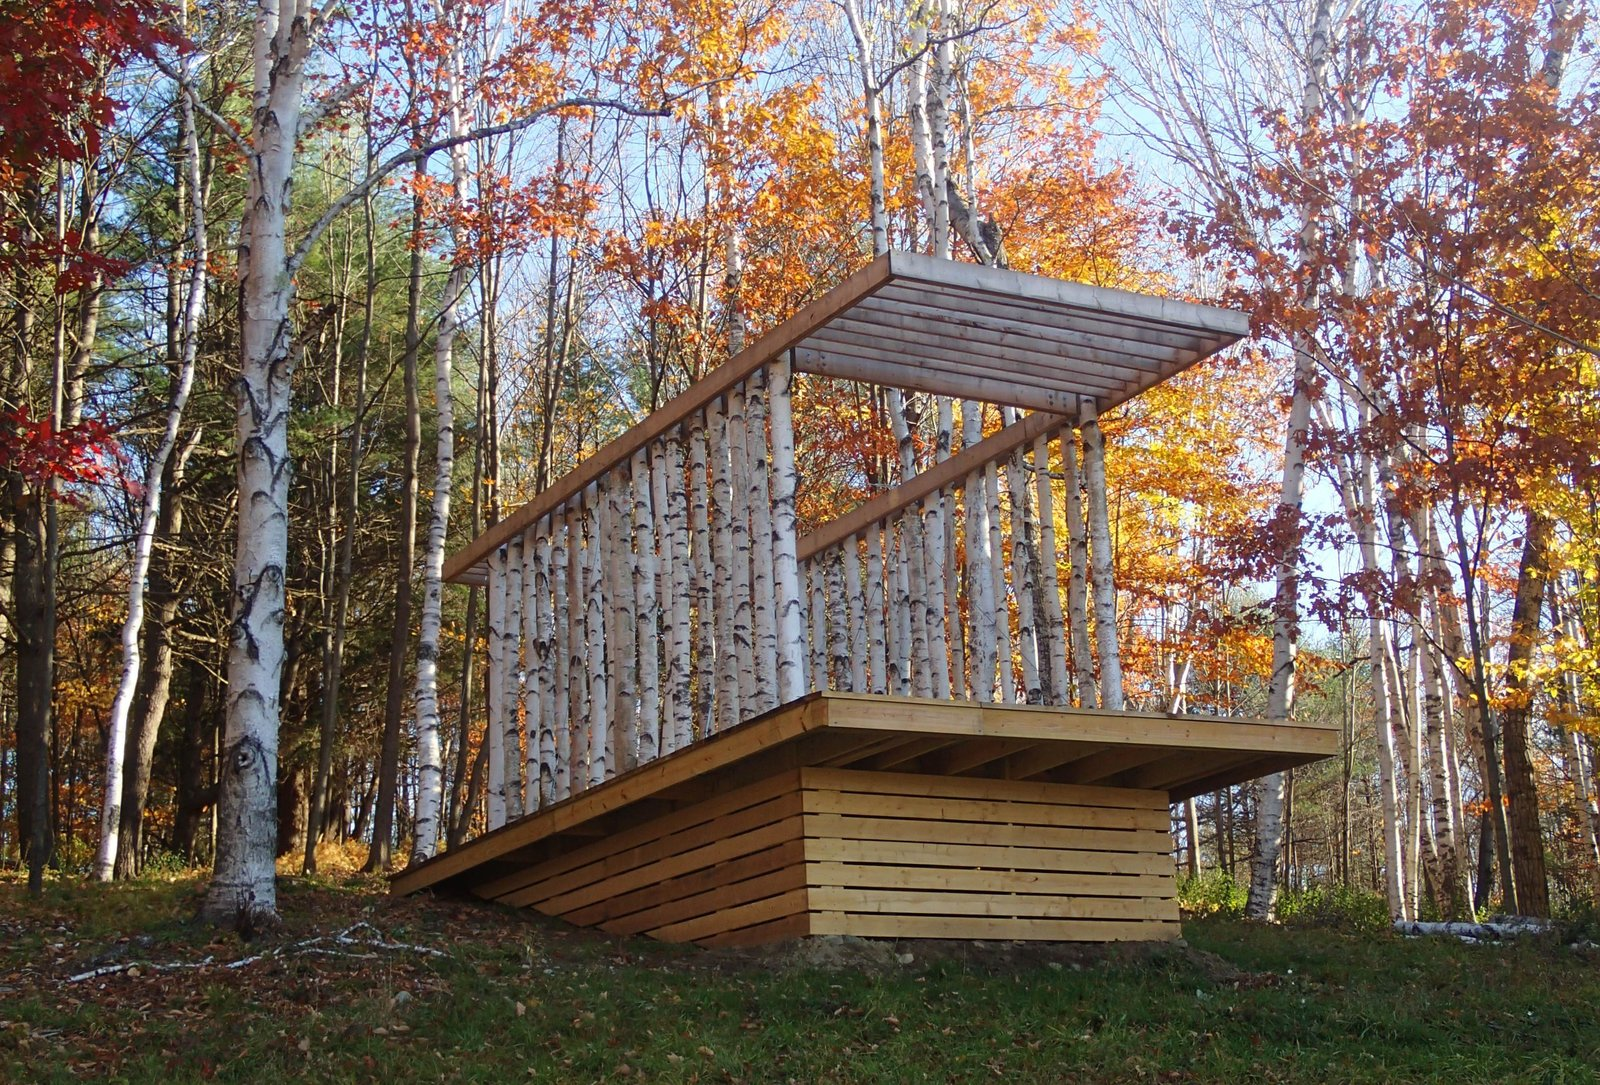 Outdoor, Side Yard, Woodland, Small Patio, Porch, Deck, Trees, Decking Patio, Porch, Deck, Vertical Fences, Wall, Grass, and Wood Fences, Wall The Birch Pavilion sits atop a 14-by-26-foot platform composed of hemlock and pressure-treated timbers. Photo courtesy of Moskow Linn Architects.  Photo 1 of 10 in Wood Guide Part II: How to Recognize 5 (More) Common Wood Species from Aspiring Architects Build a Pavilion in the Vermont Forest